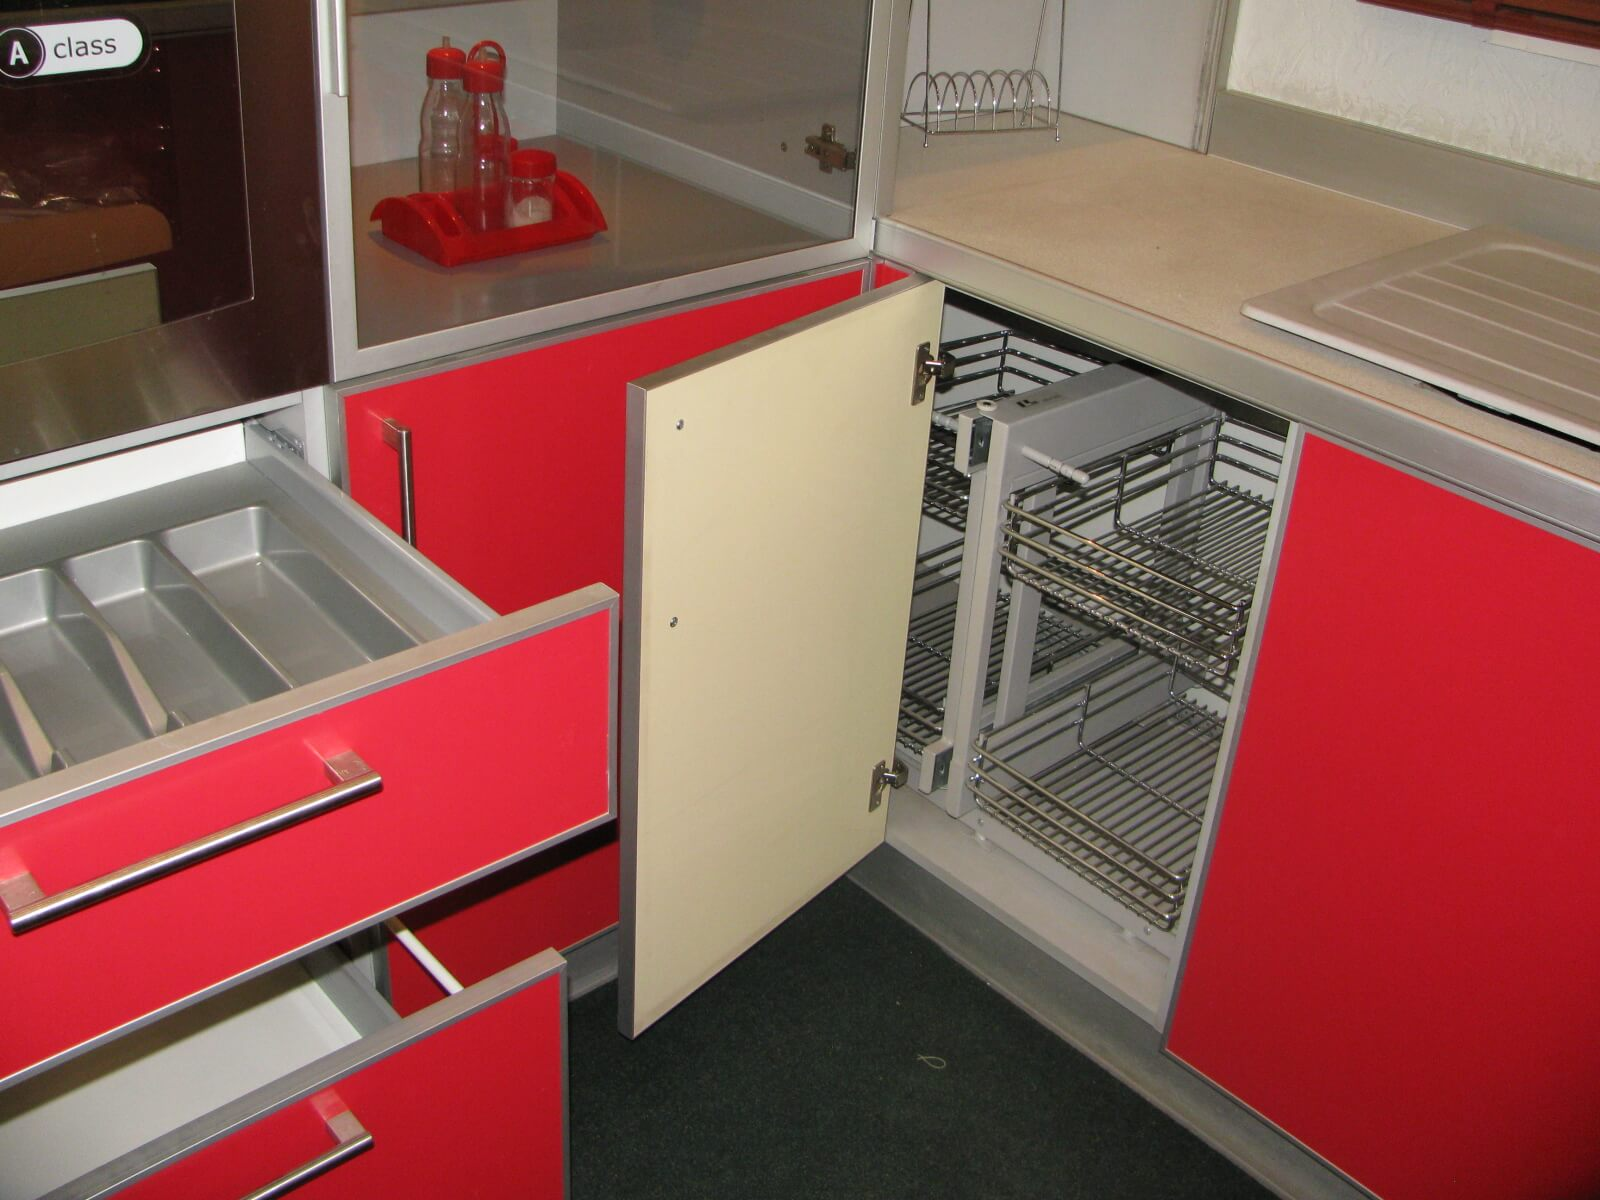 10 Kitchen Custom Custom Cabinets for Unique Functional Interior. Red plastic facades of the angle cabinet with multifunctional metal rack